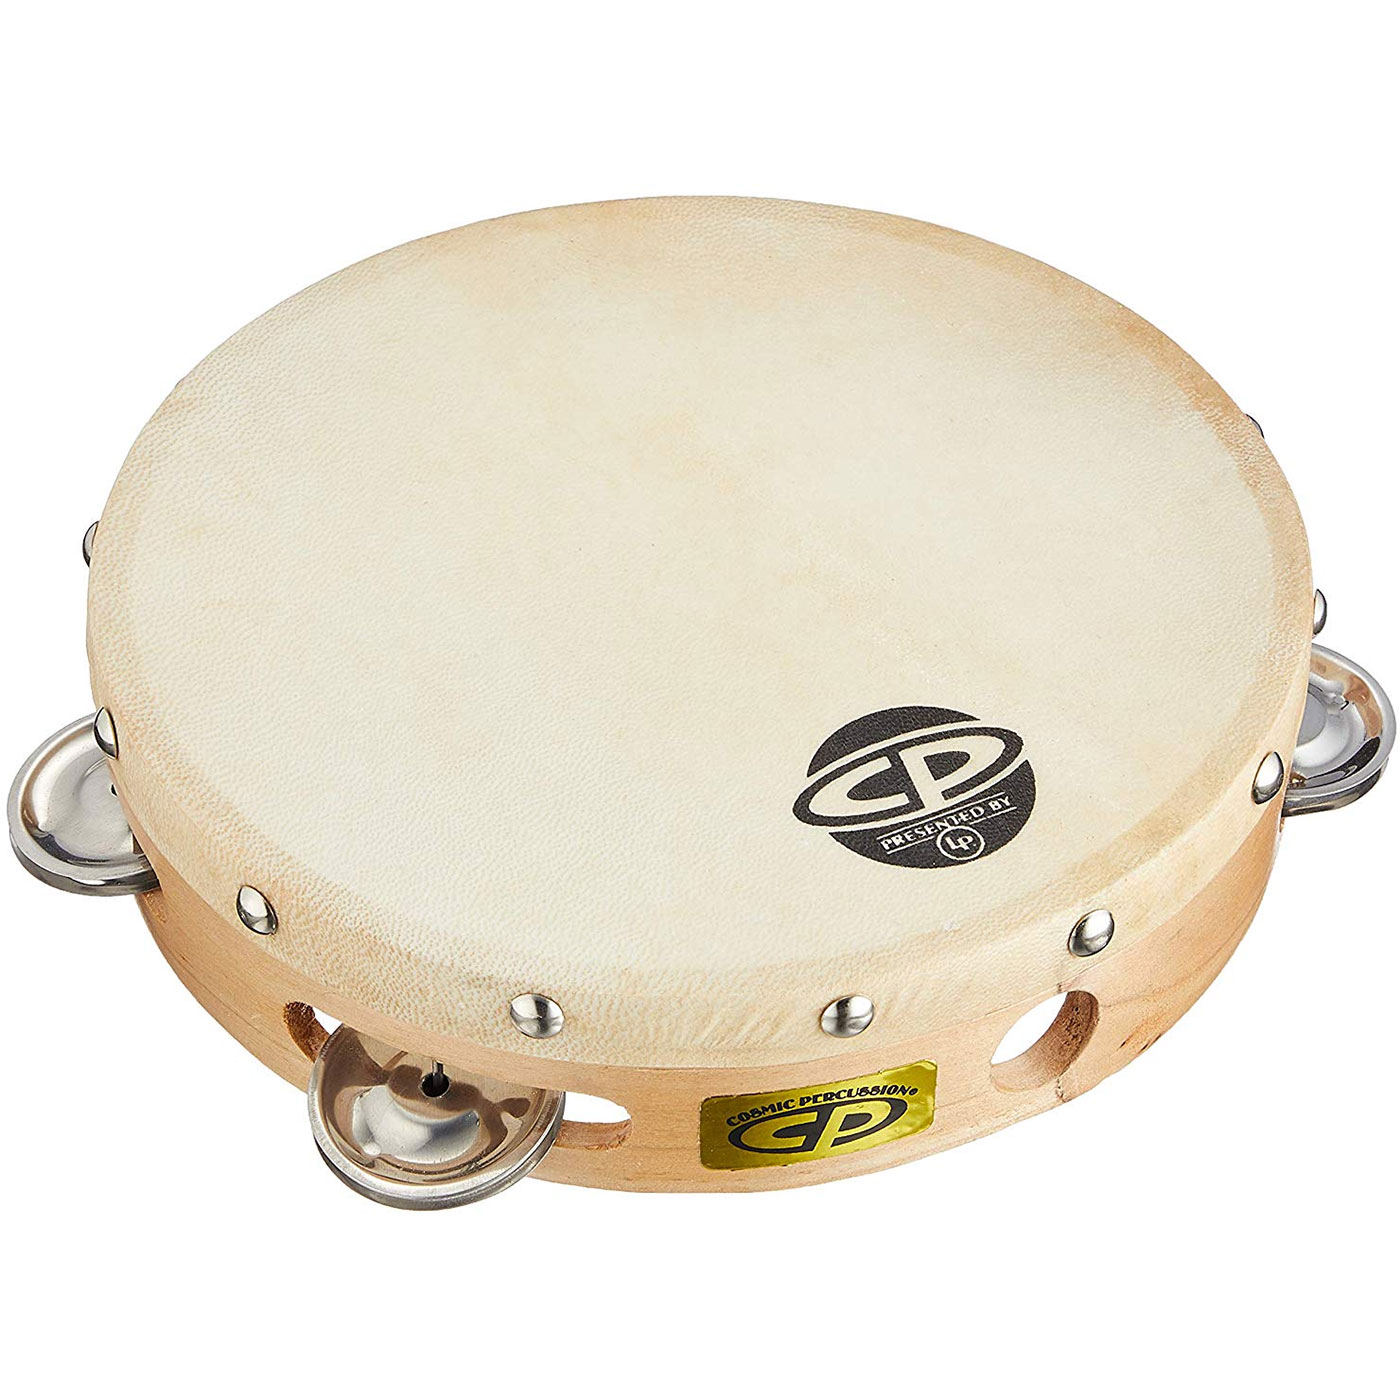 "Cosmic Percussion 8"" Single-Row Steel Tambourine (Natural Head)"